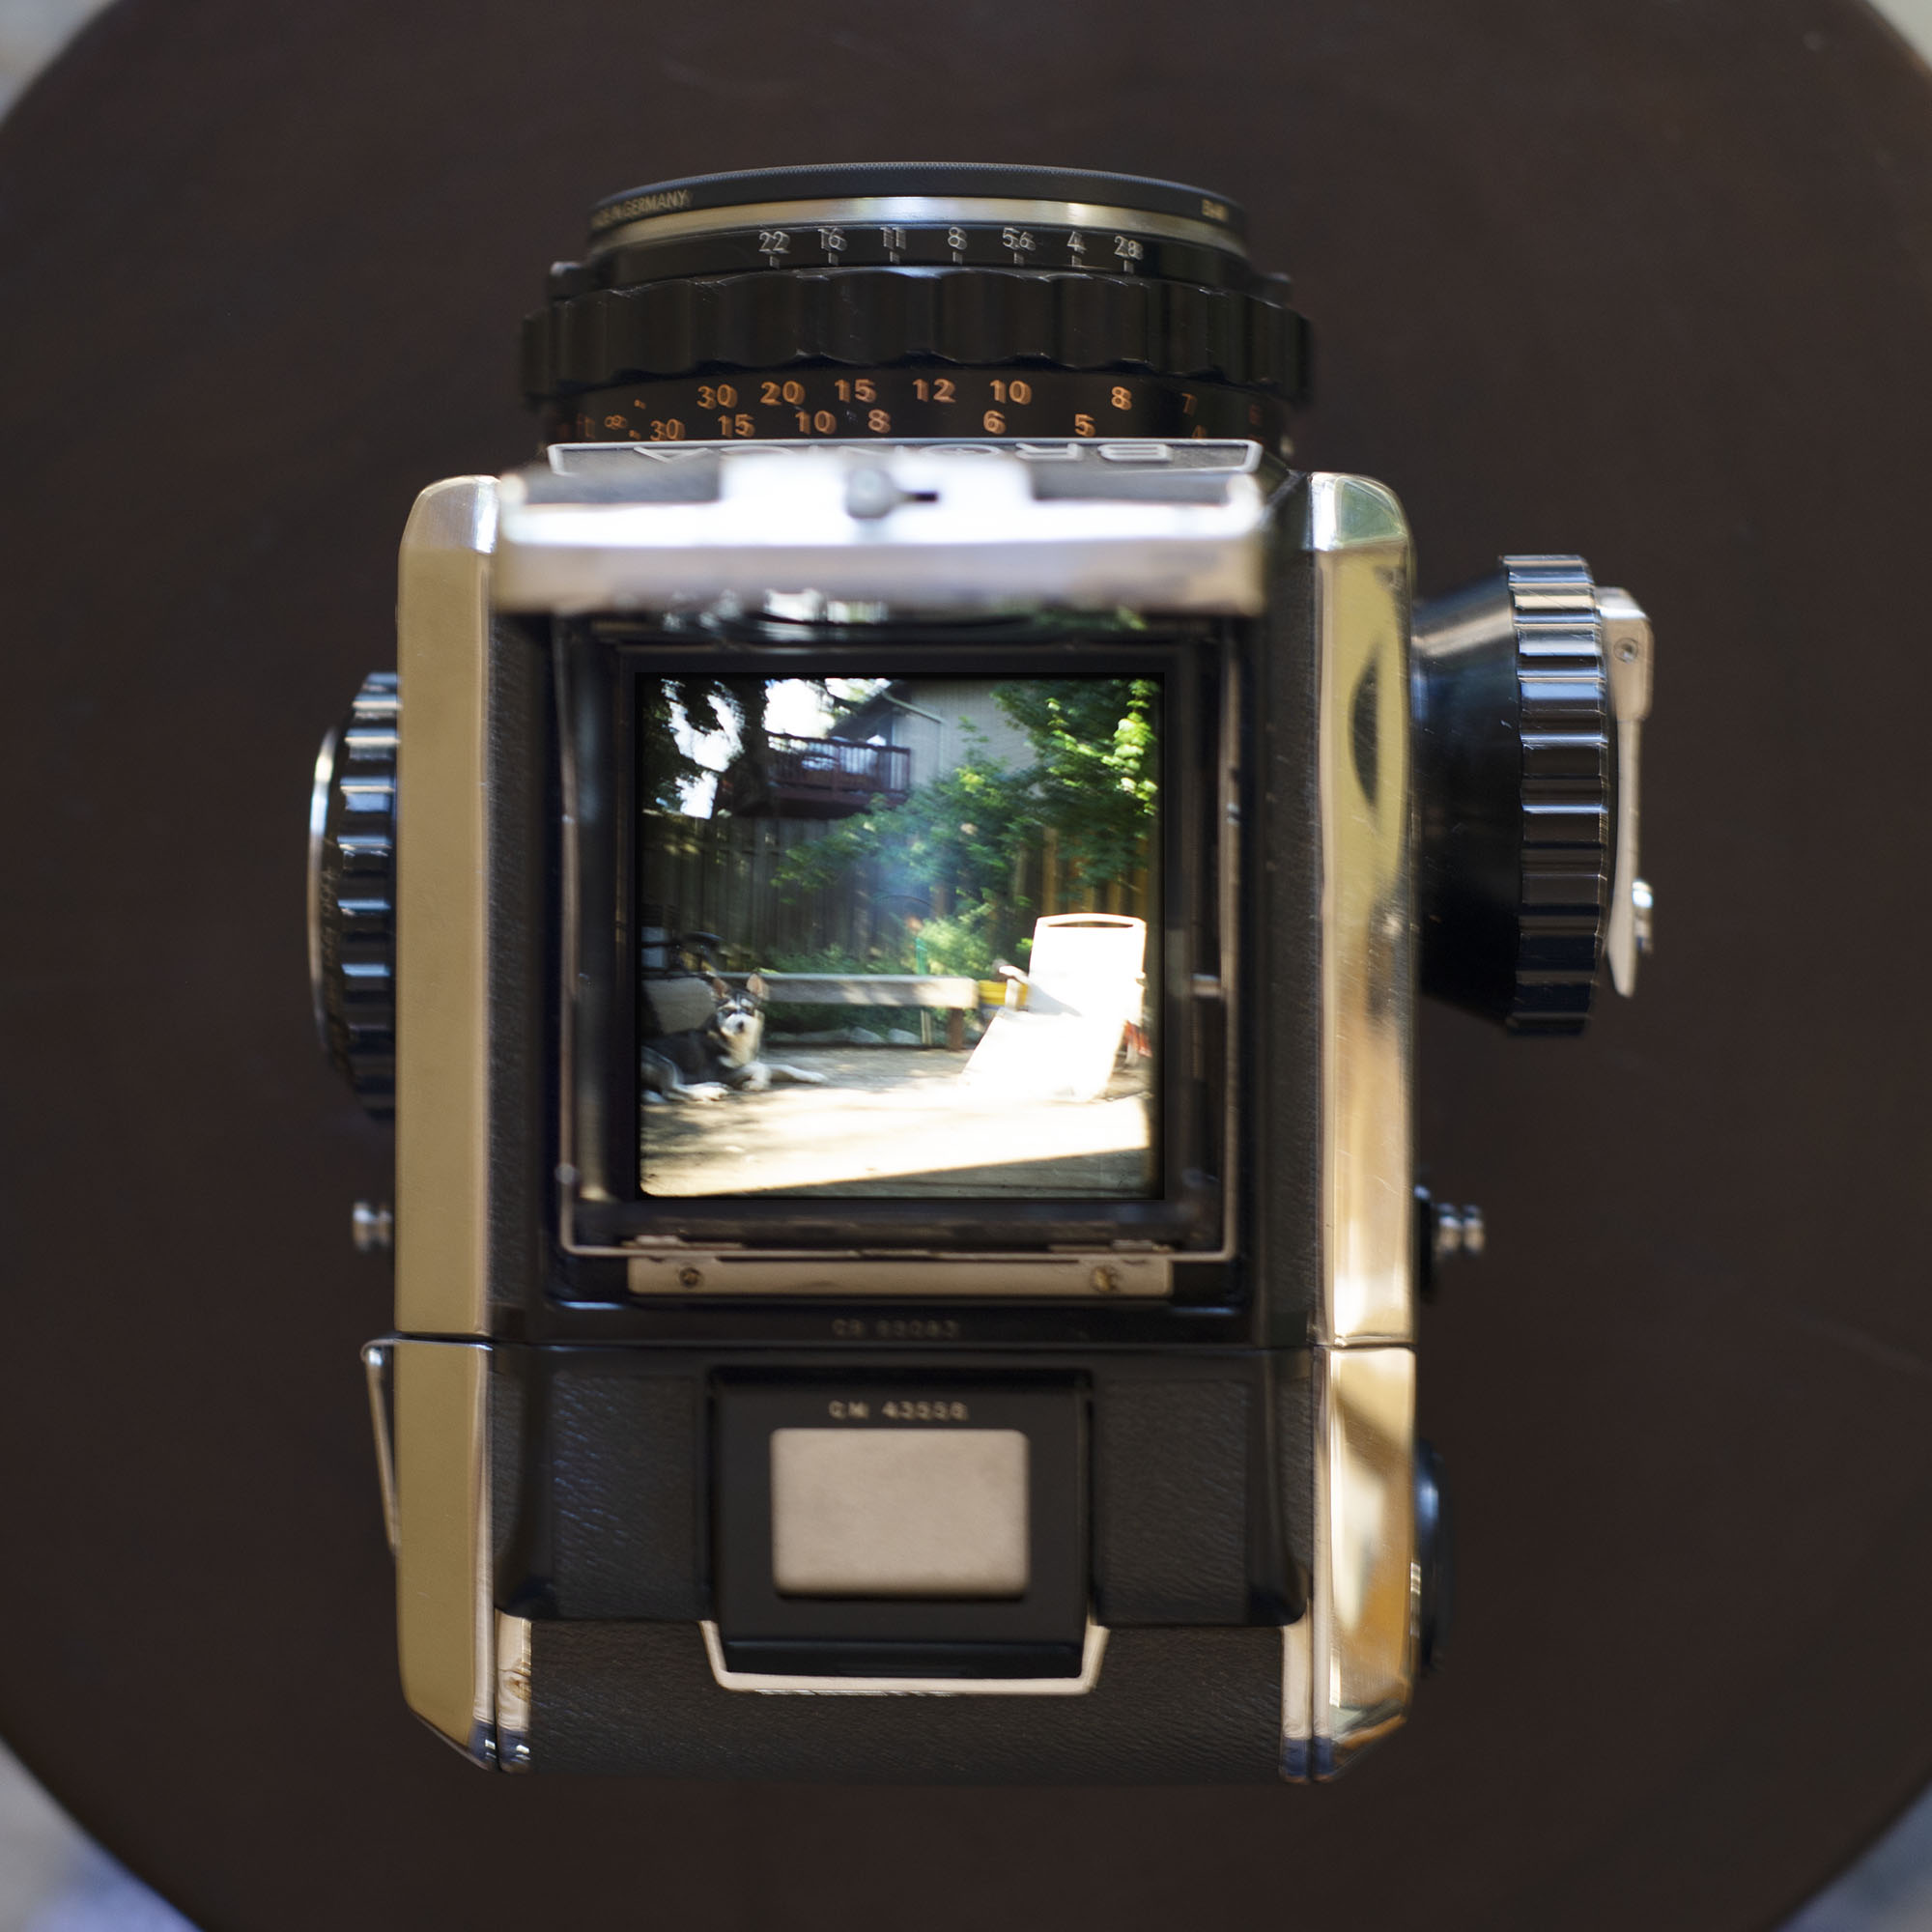 Bronica S2 view through the waist level finder